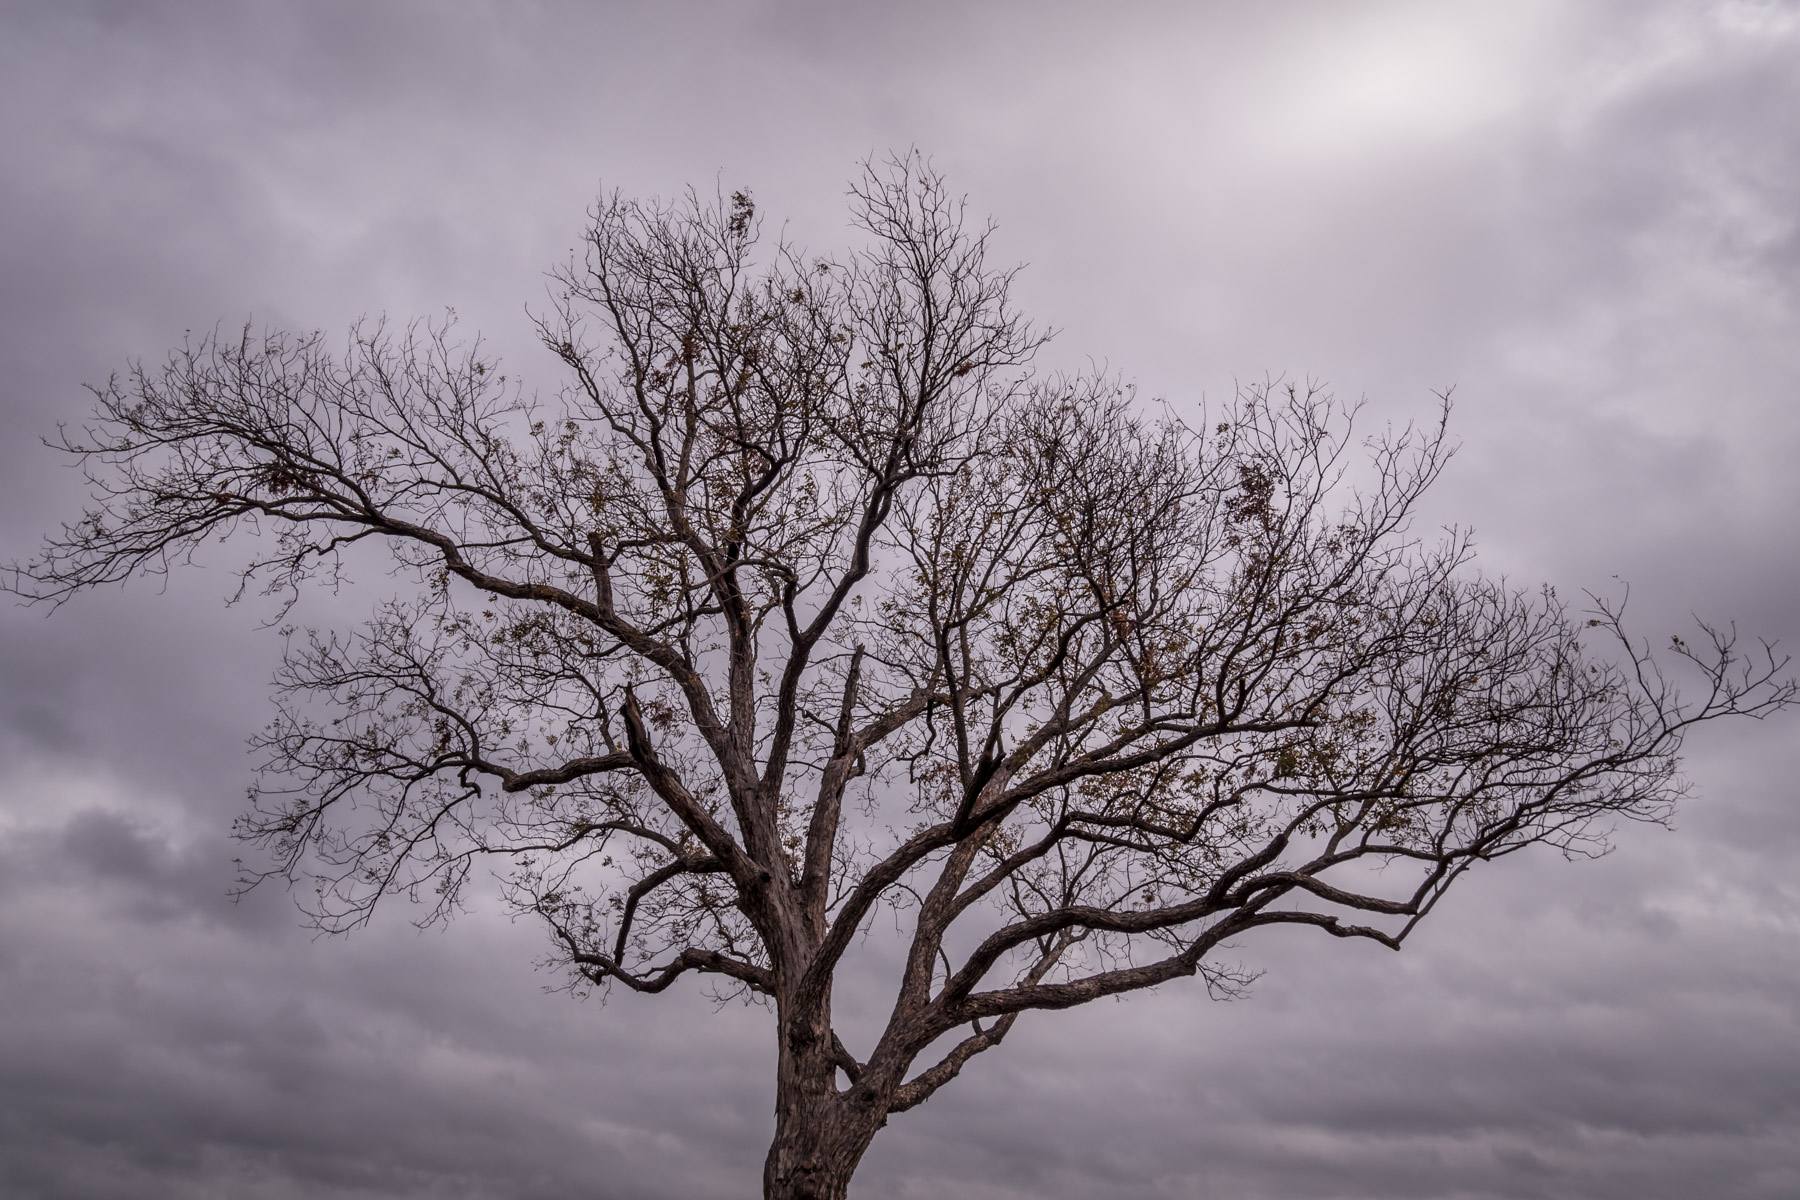 A tree's crown reaches into the overcast sky at Breckinridge Park, Richardson, Texas.